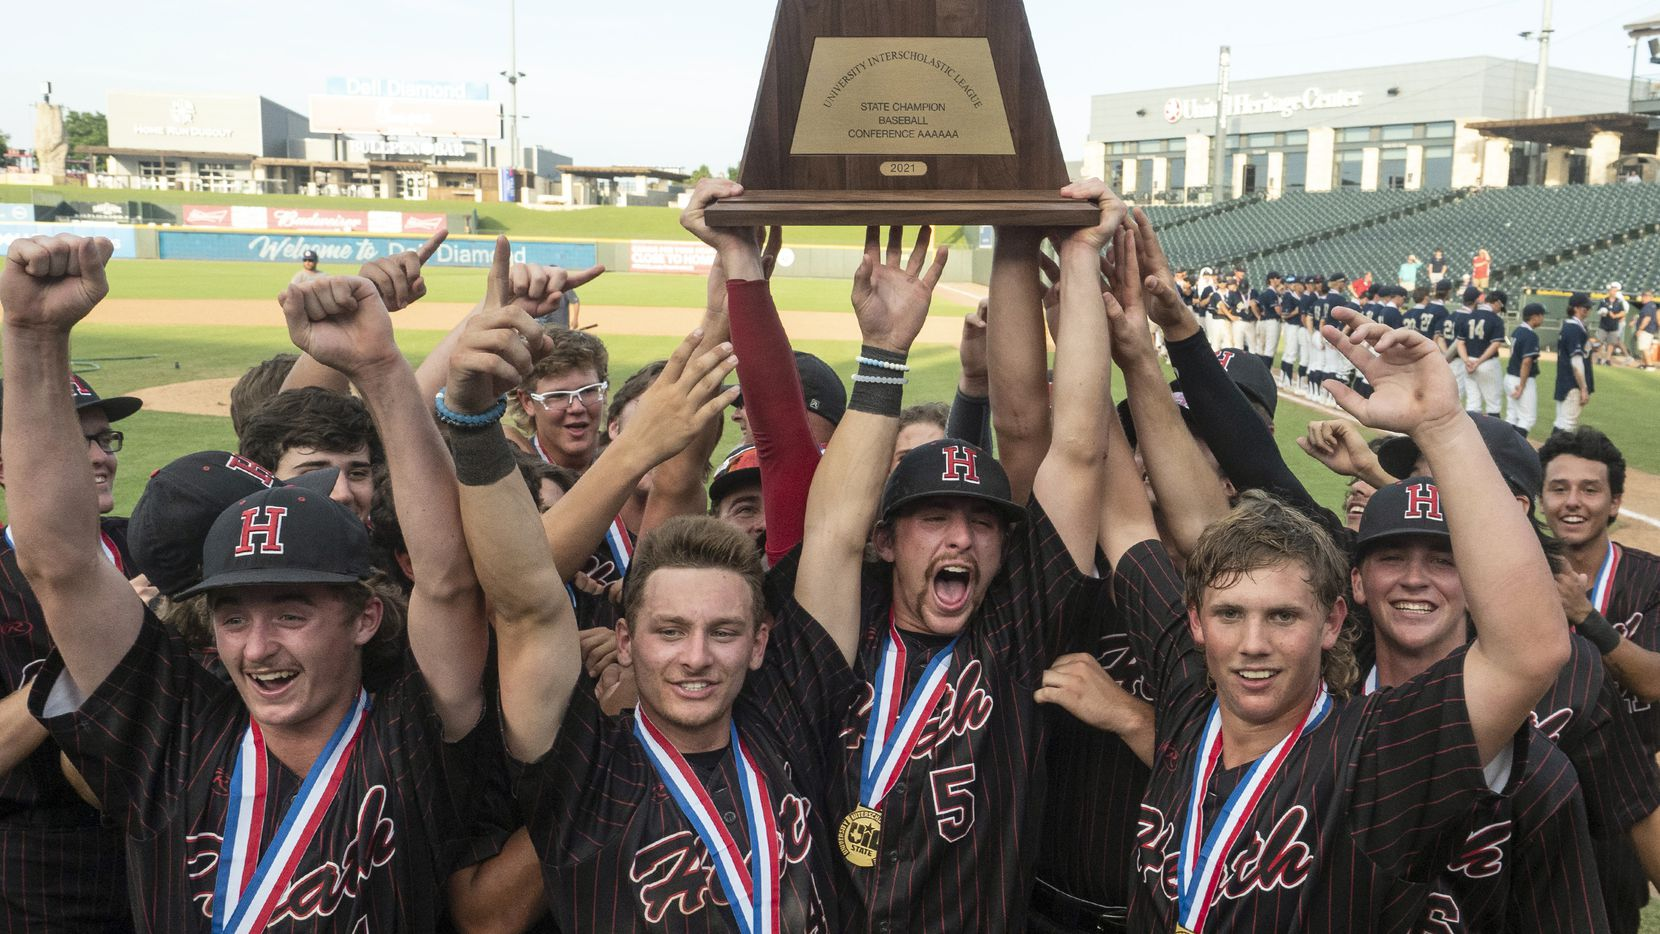 The Rockwall-Heath Hawks team celebrate with the championship trophy after defeating Keller in the 2021 UIL 6A state baseball final held, Saturday, June 12, 2021, in Round Rock, Texas.  Rockwall-Heath defeated Keller 4-3.